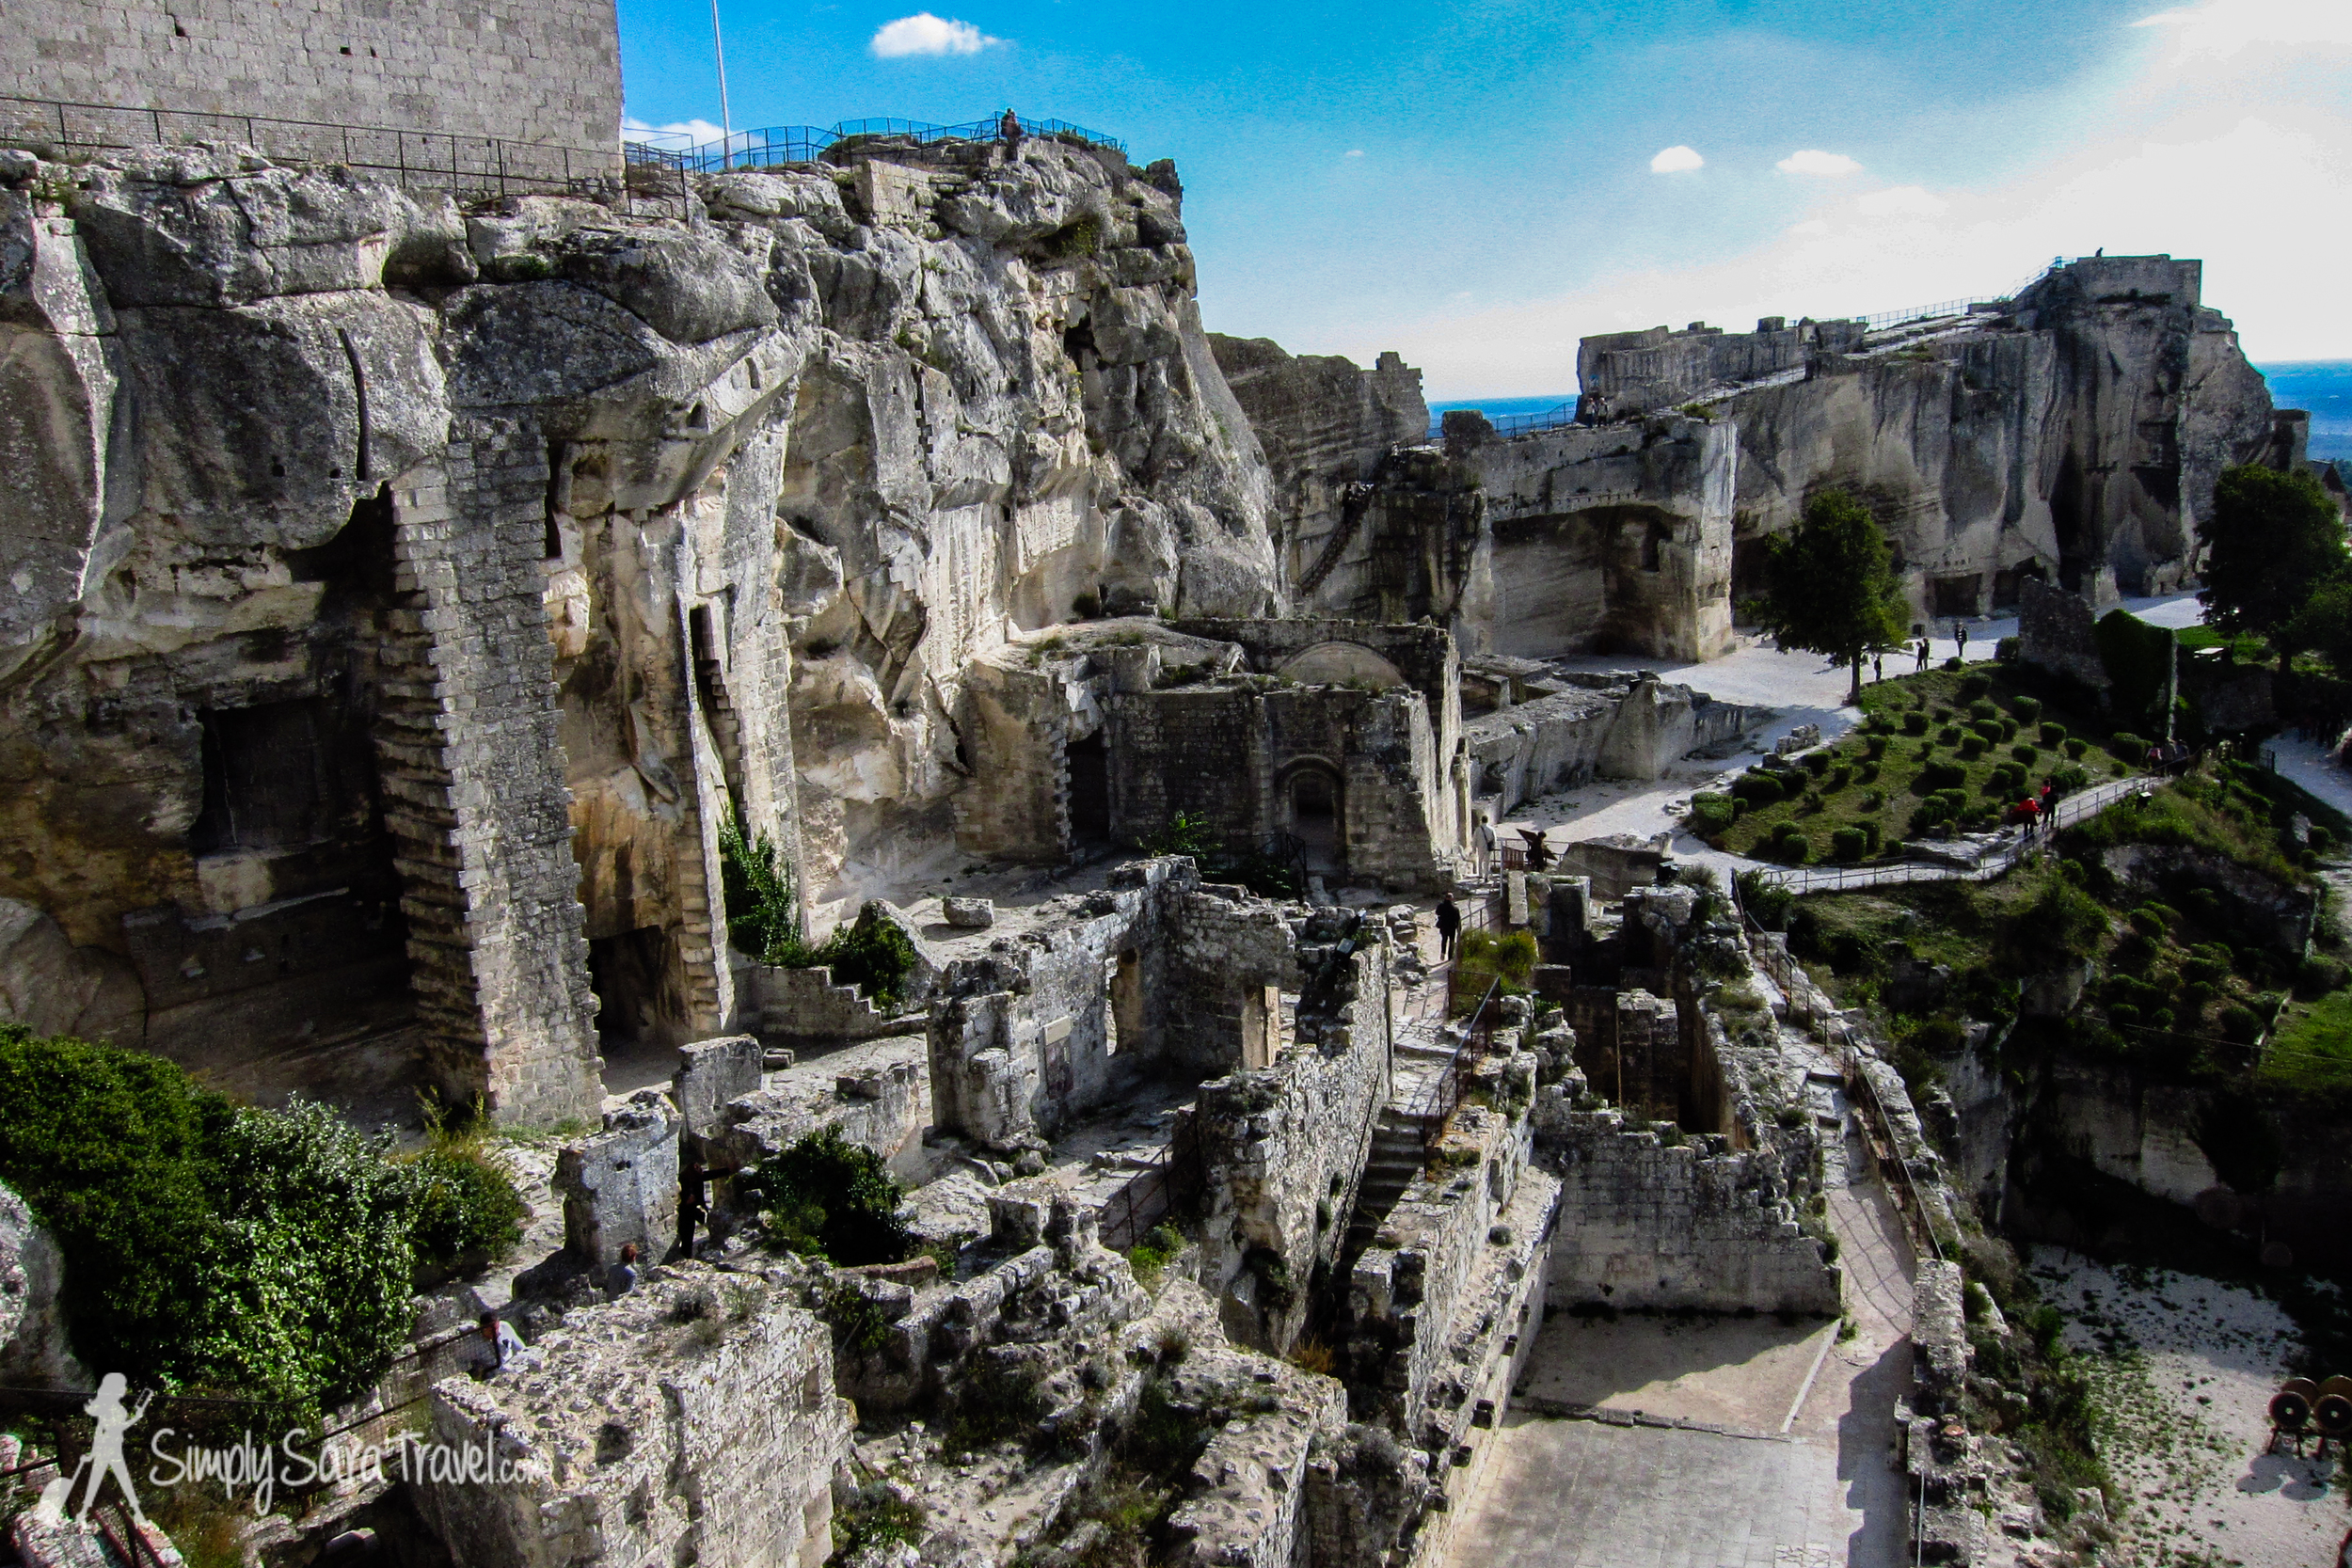 At the chateau-fortress of Les-Baux-de-Provence  (October 2013)